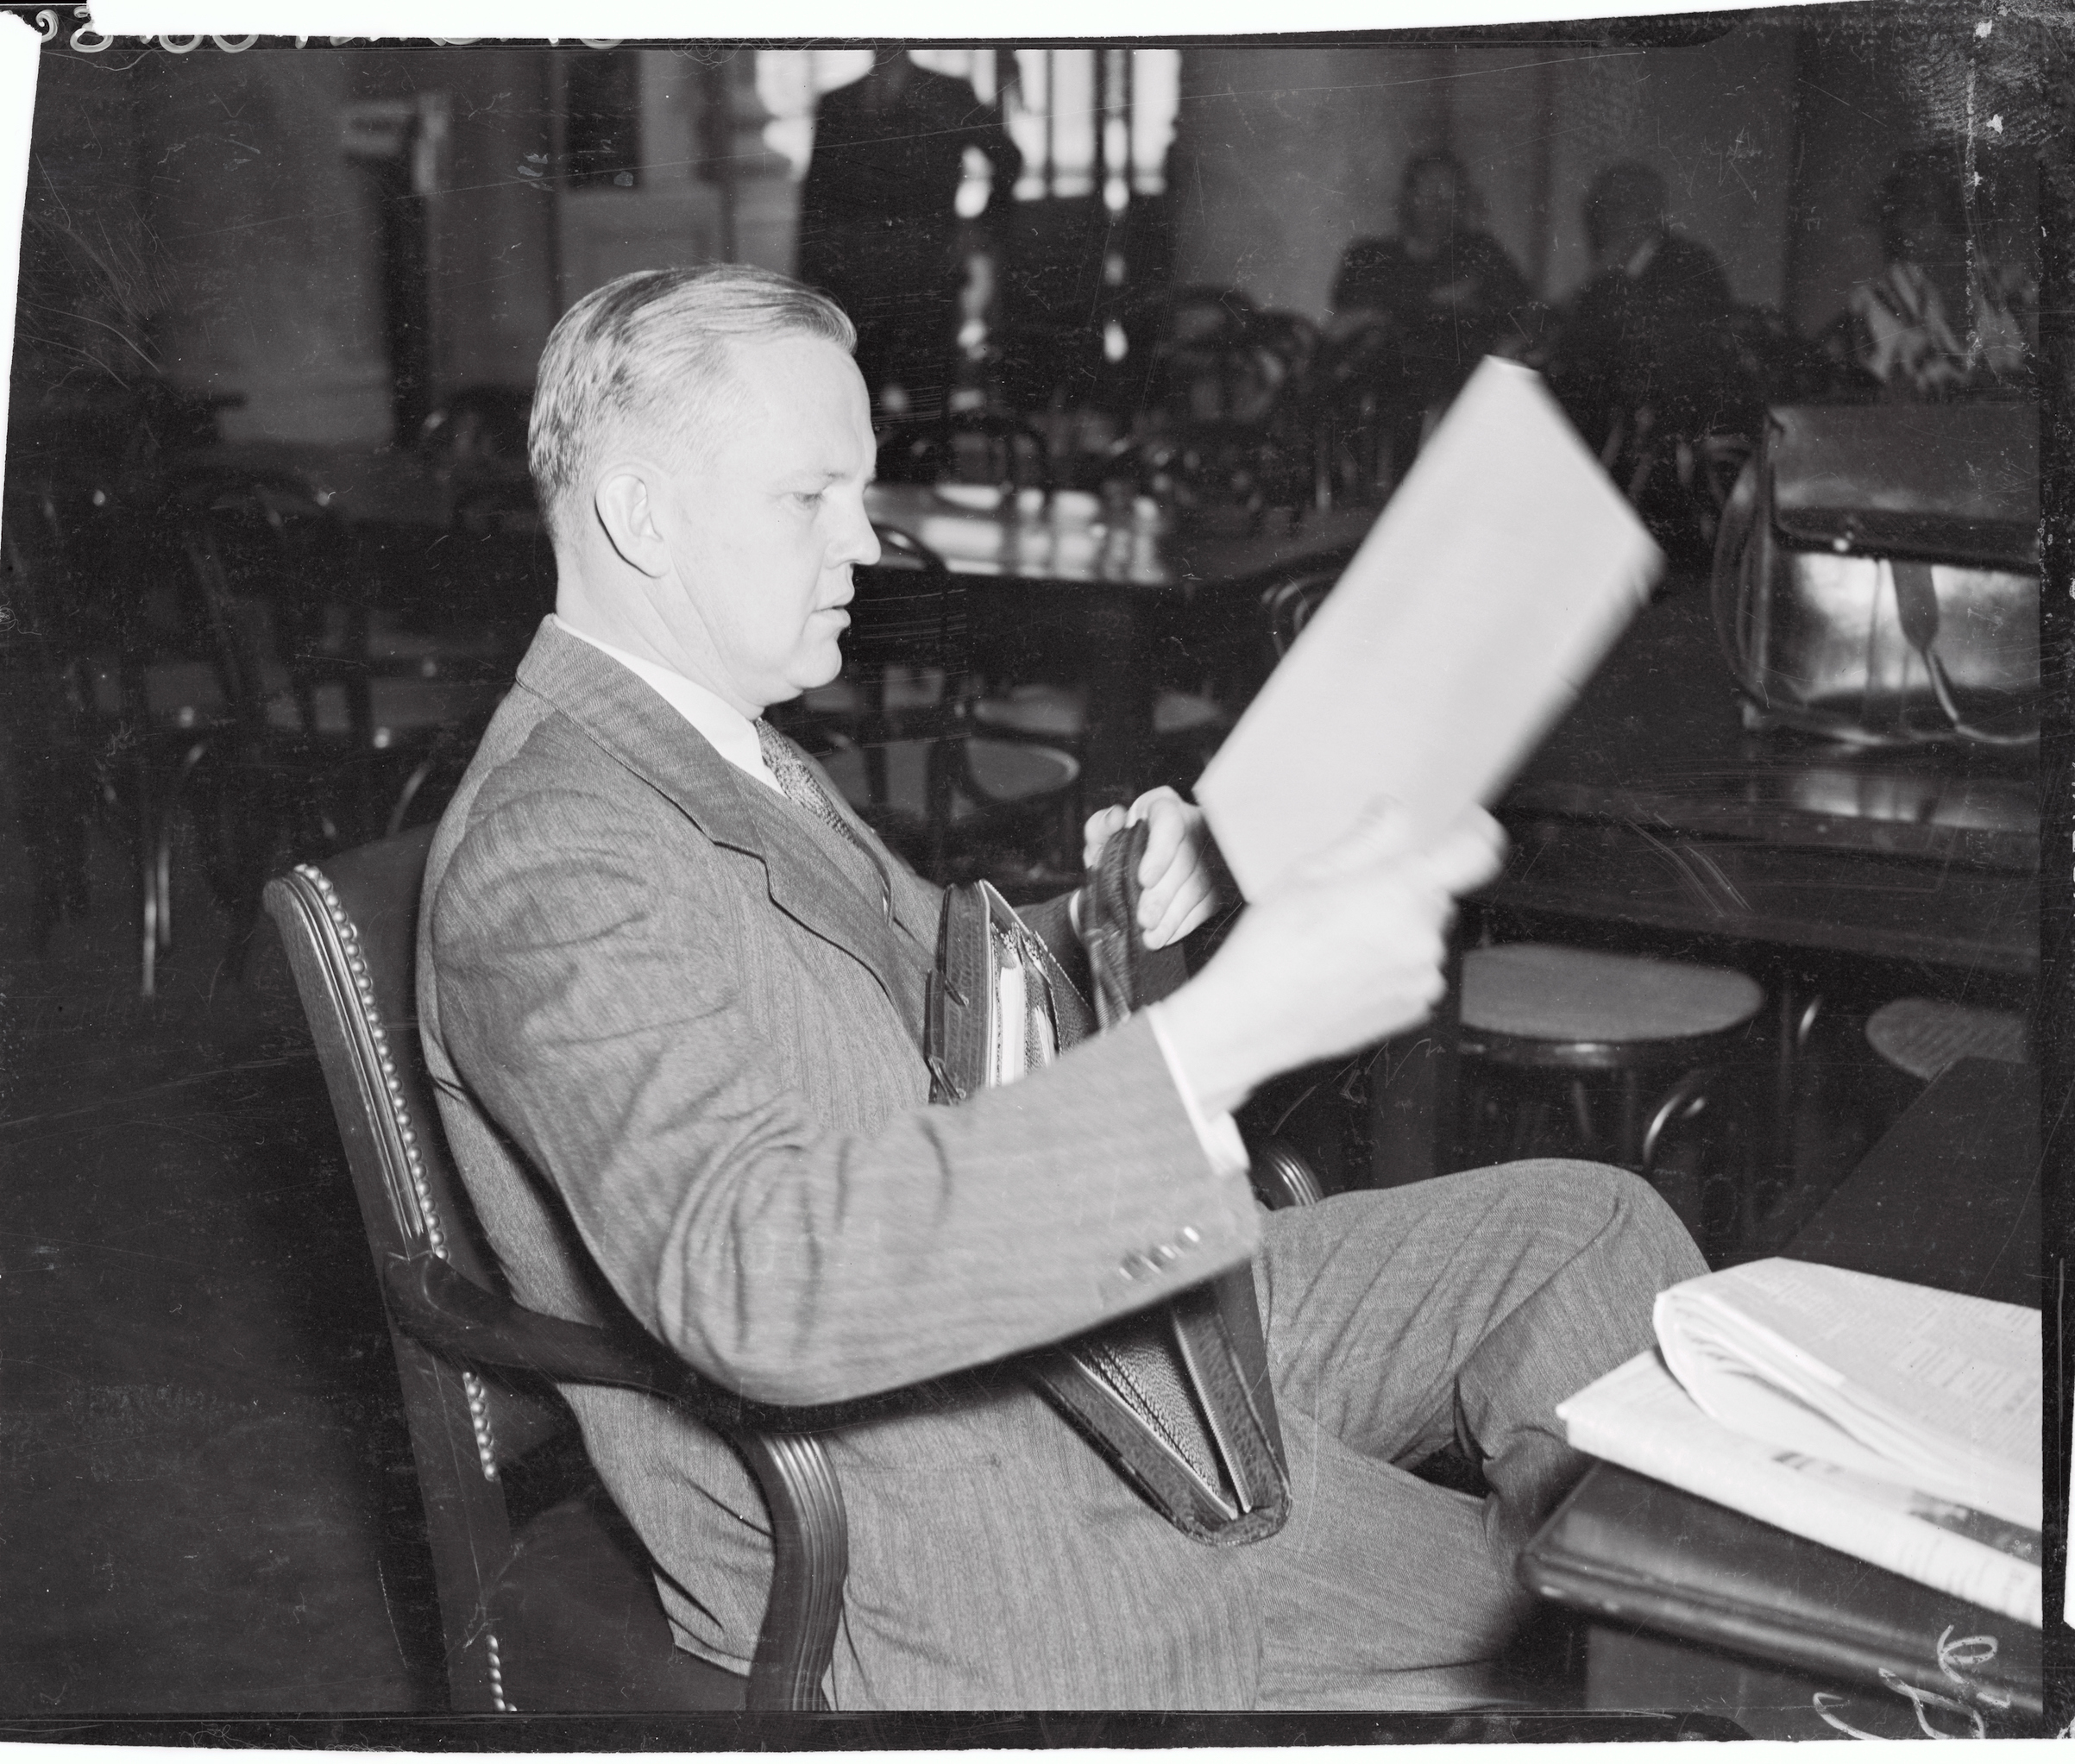 William Alfred Eddy, then president of Hobart and William Smith Colleges, at Geneva, N.Y., as he testified before the Senate Judiciary Committee in Washington, D.C., in 1937.